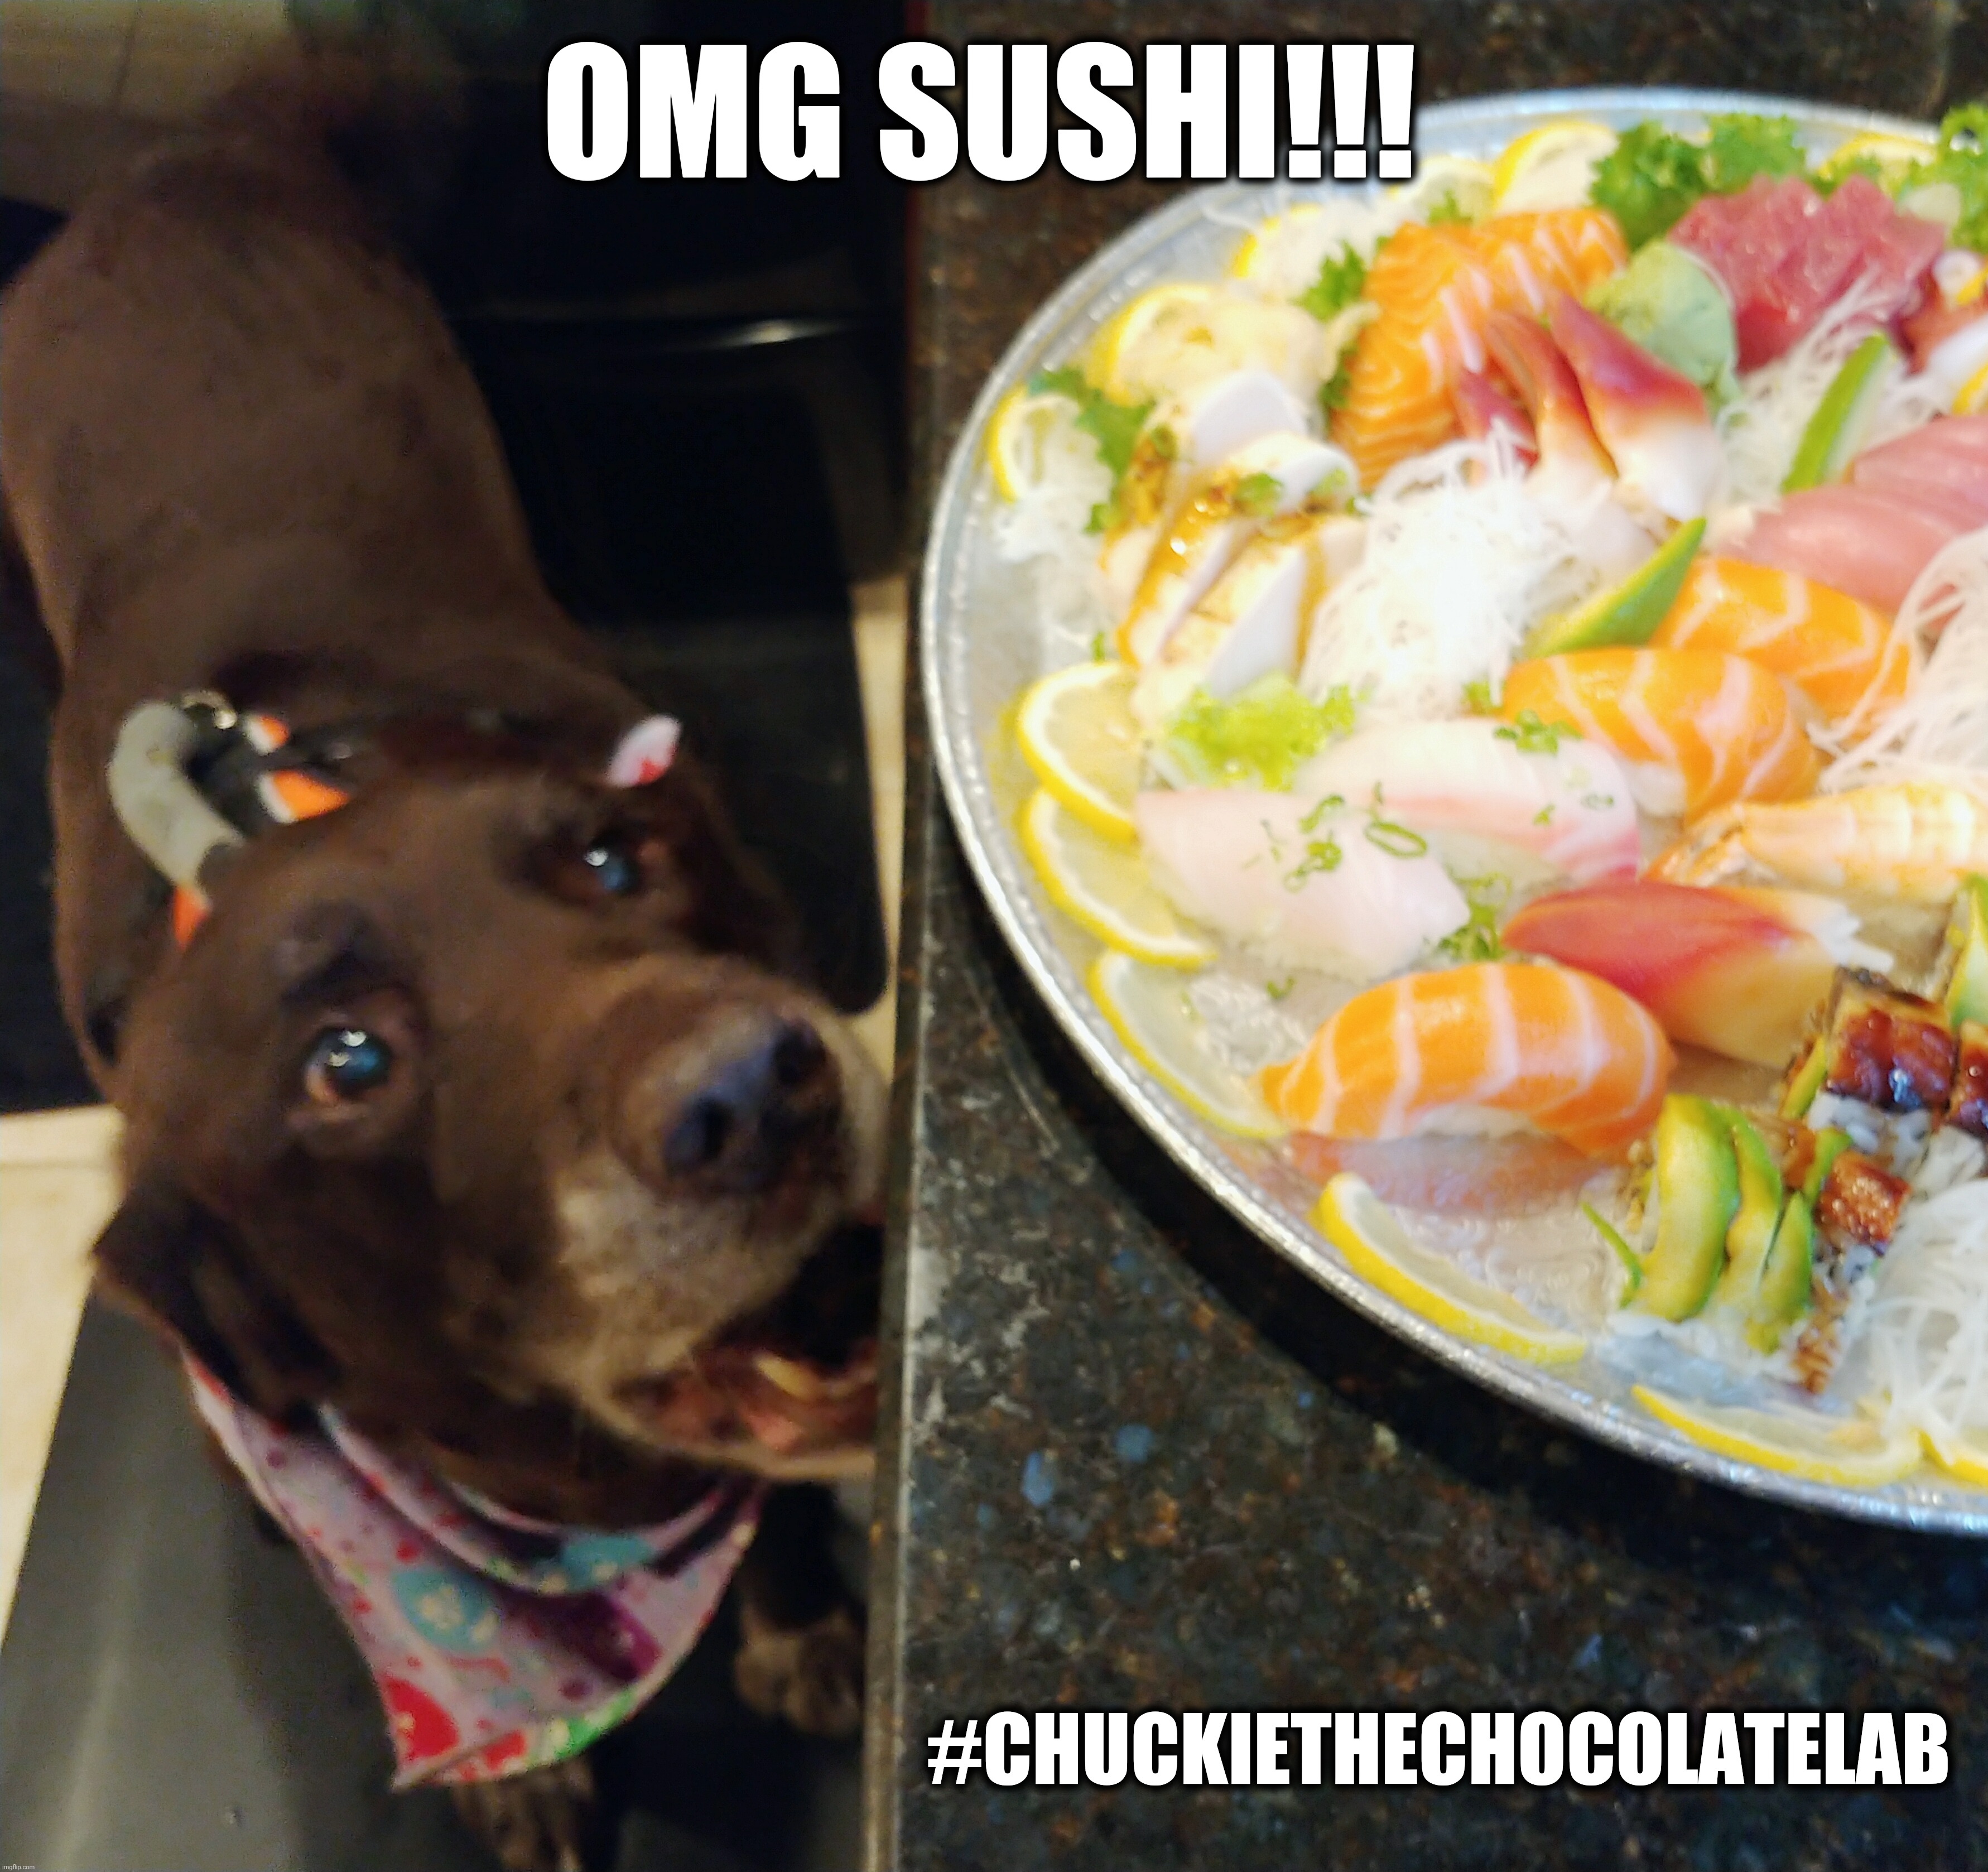 Omg SUSHI! |  OMG SUSHI!!! #CHUCKIETHECHOCOLATELAB | image tagged in chuckie the chocolate lab,dogs,memes,funny,sushi,funny animals | made w/ Imgflip meme maker